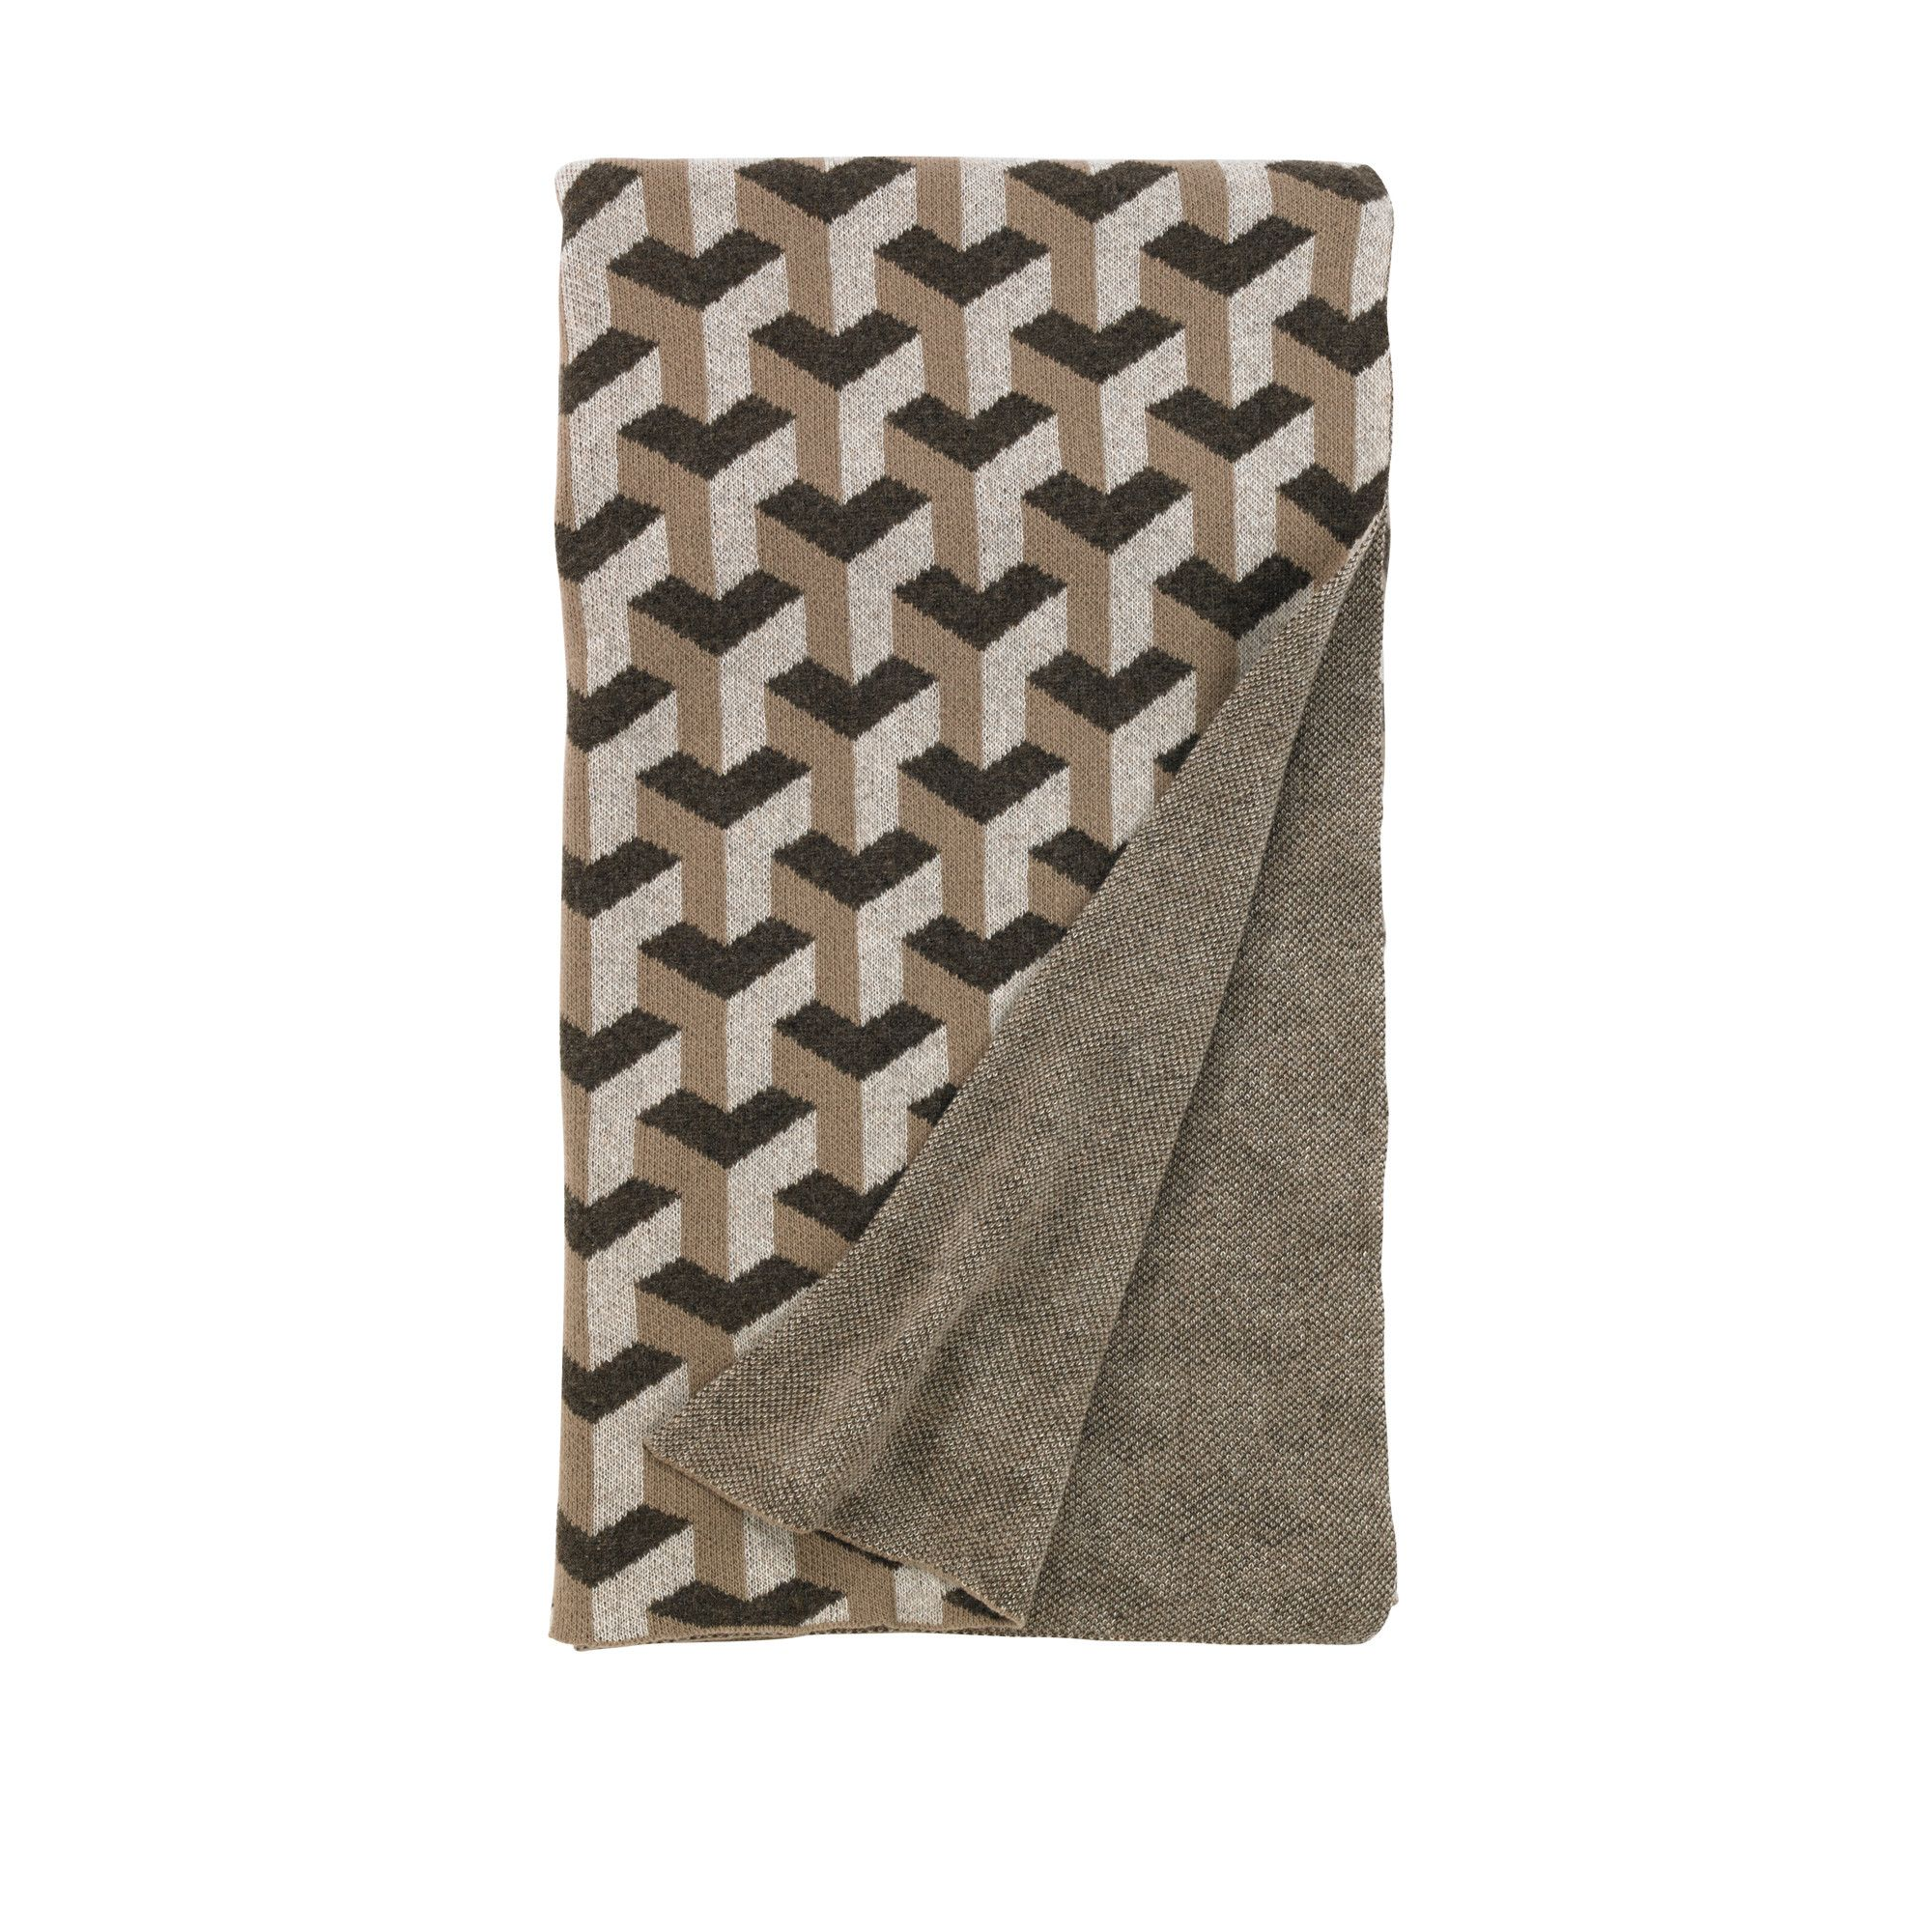 Spiegelburg Sessel Paloma Throw A Stone Floor In India Inspired The Inter Locking